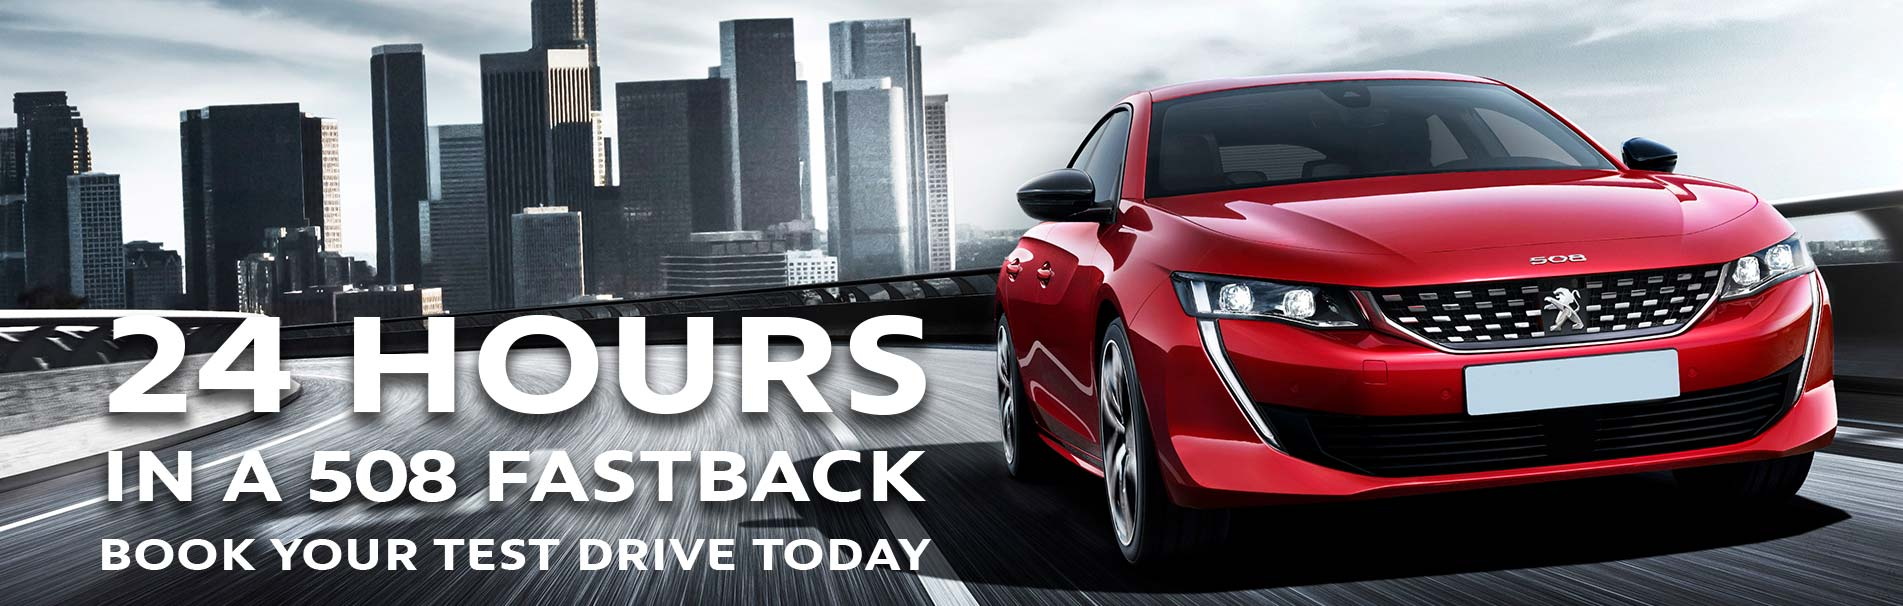 peugeot-508-fastback-24-hour-test-drives-hampshire-sli